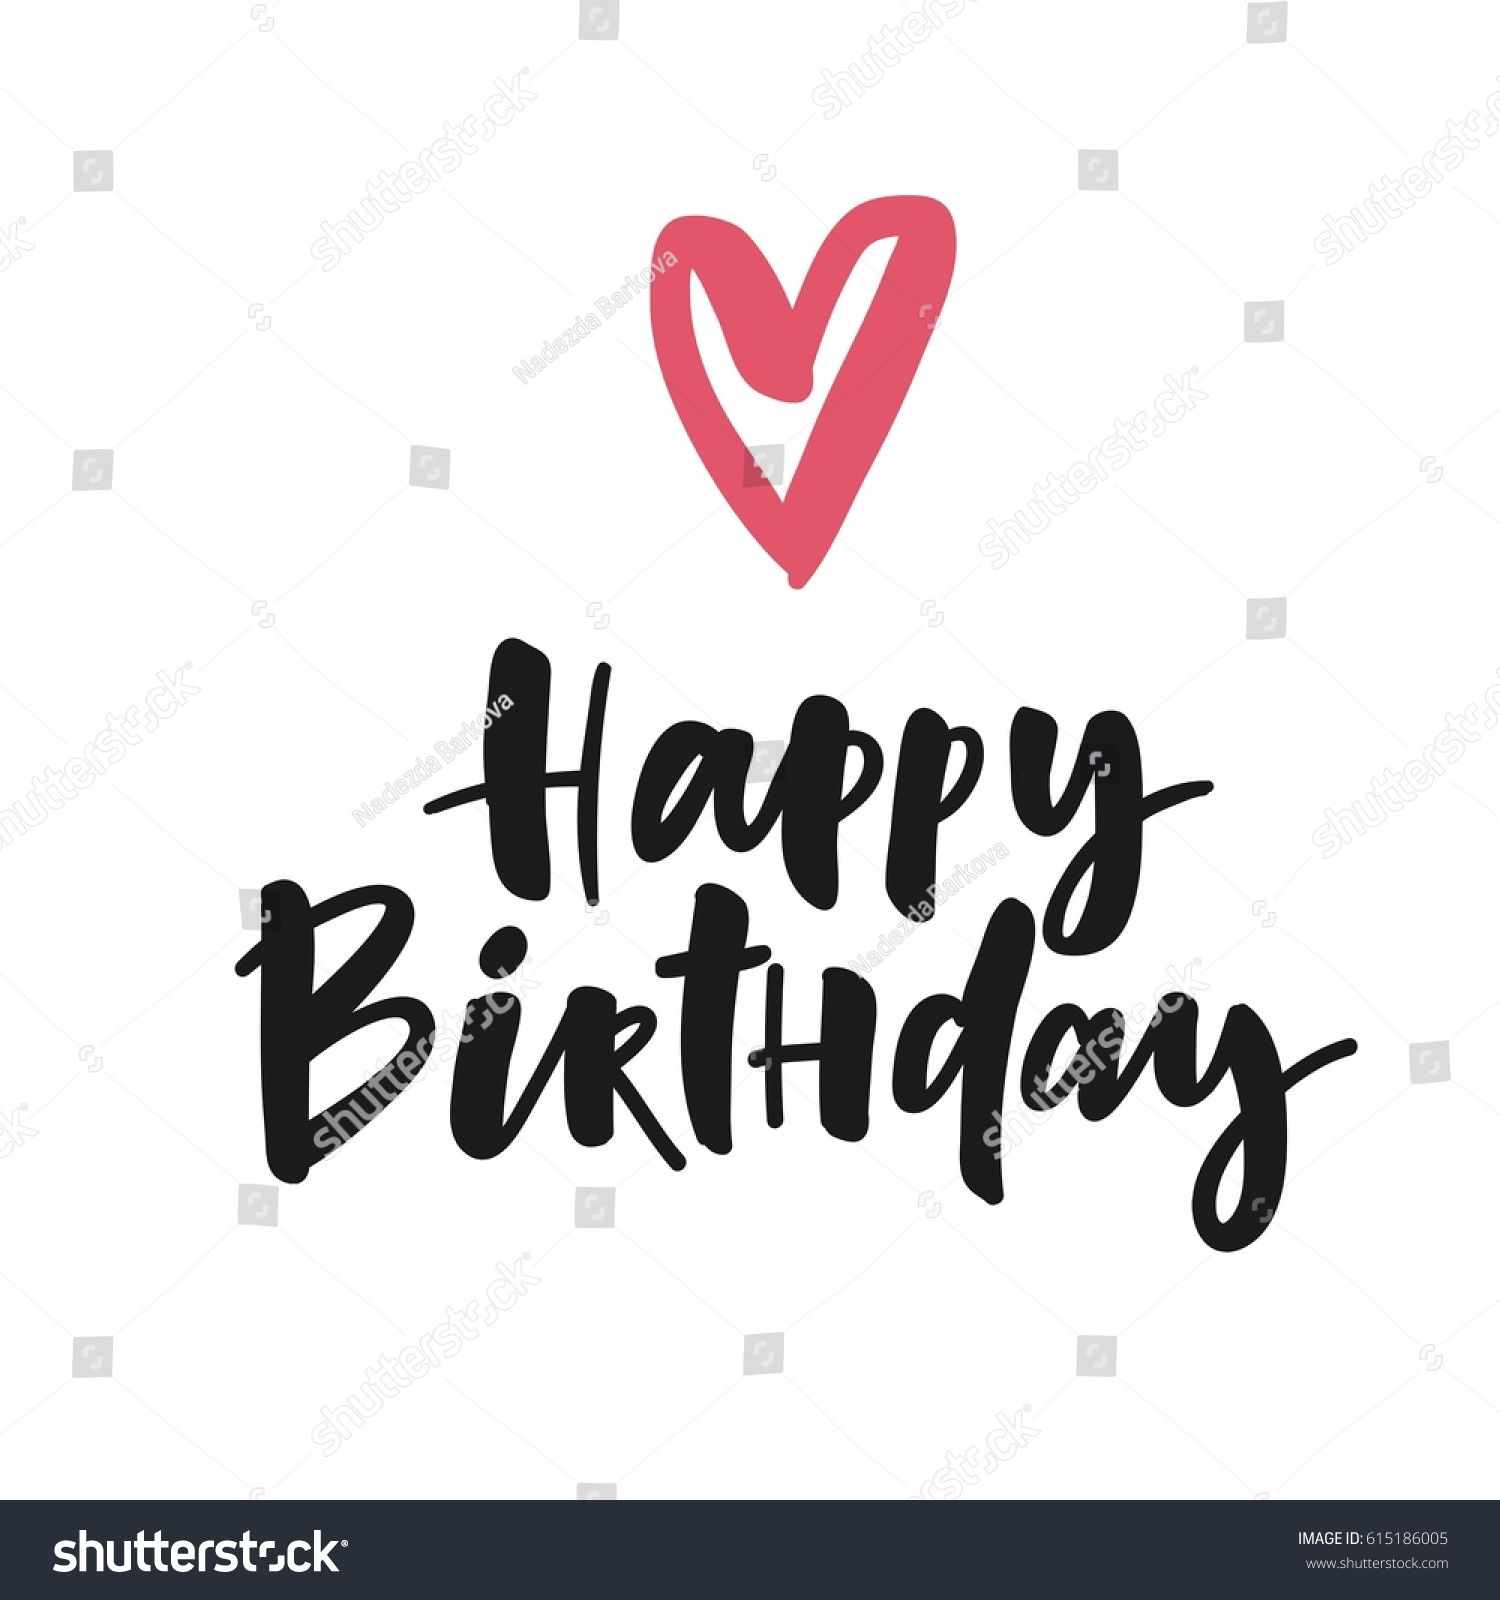 Cute Print With Lettering Happy Birthday